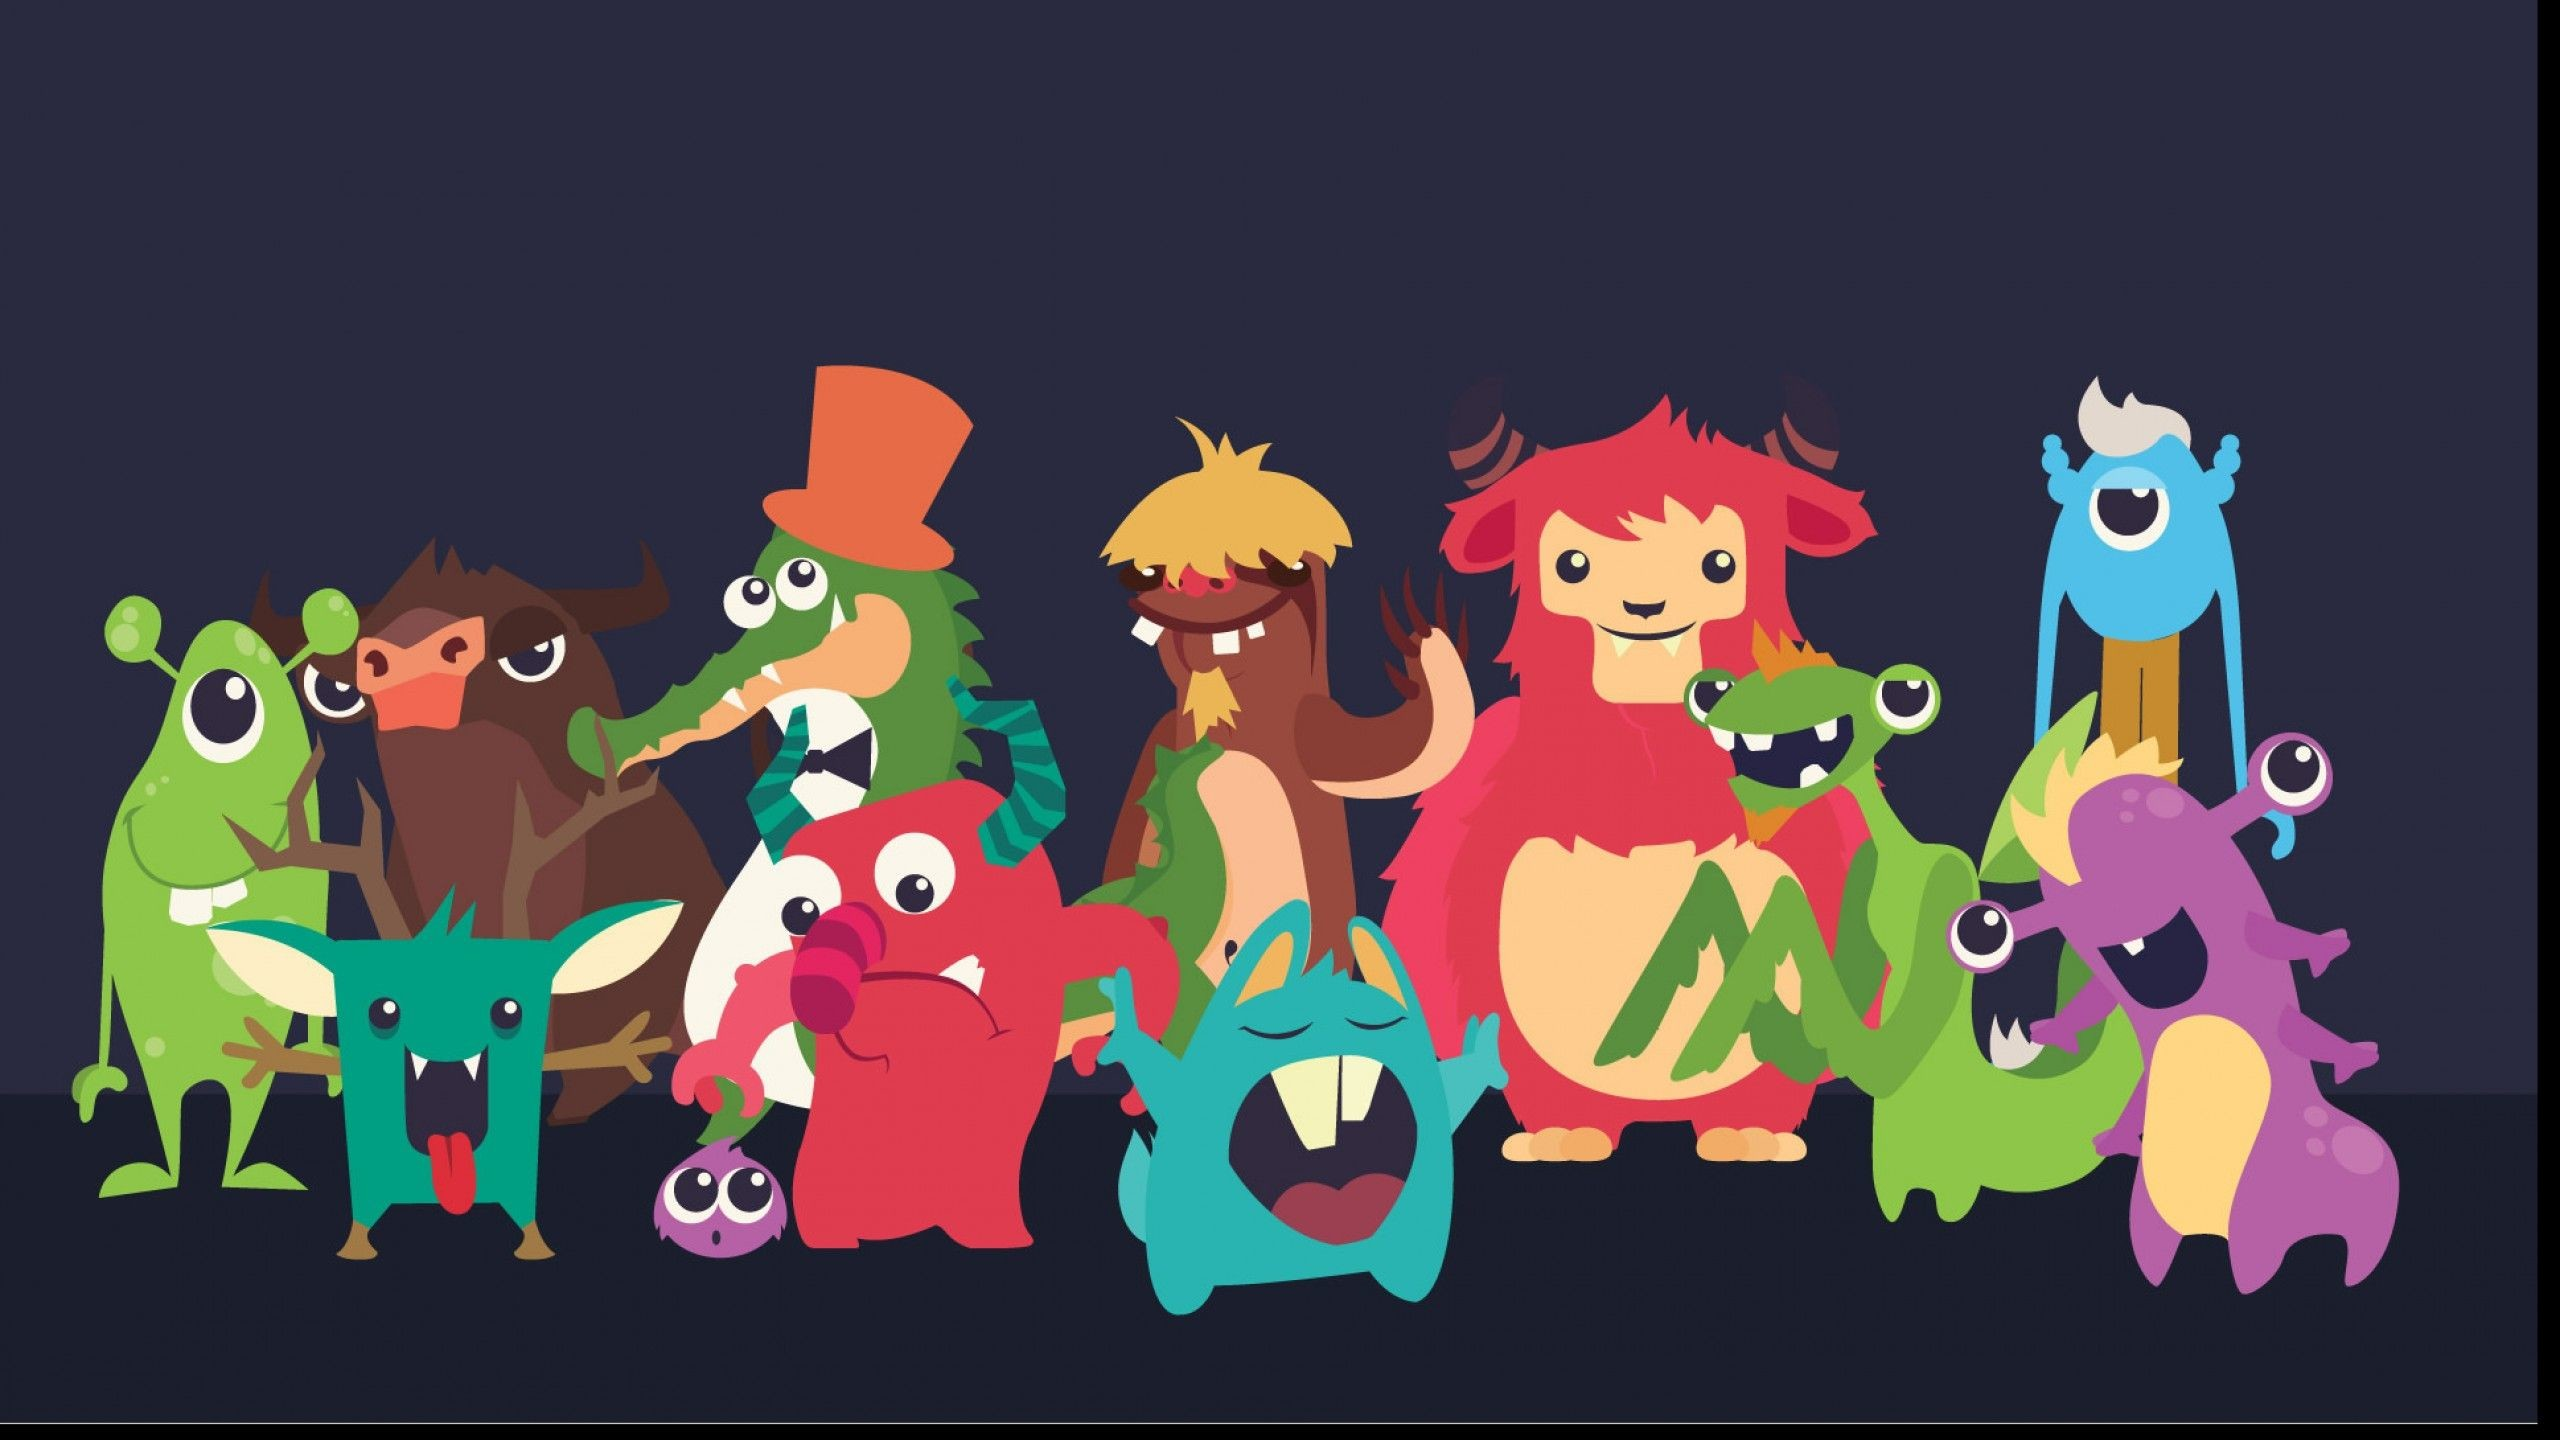 Res: 2560x1440, Wallpapers For > Cute Monsters Wallpaper